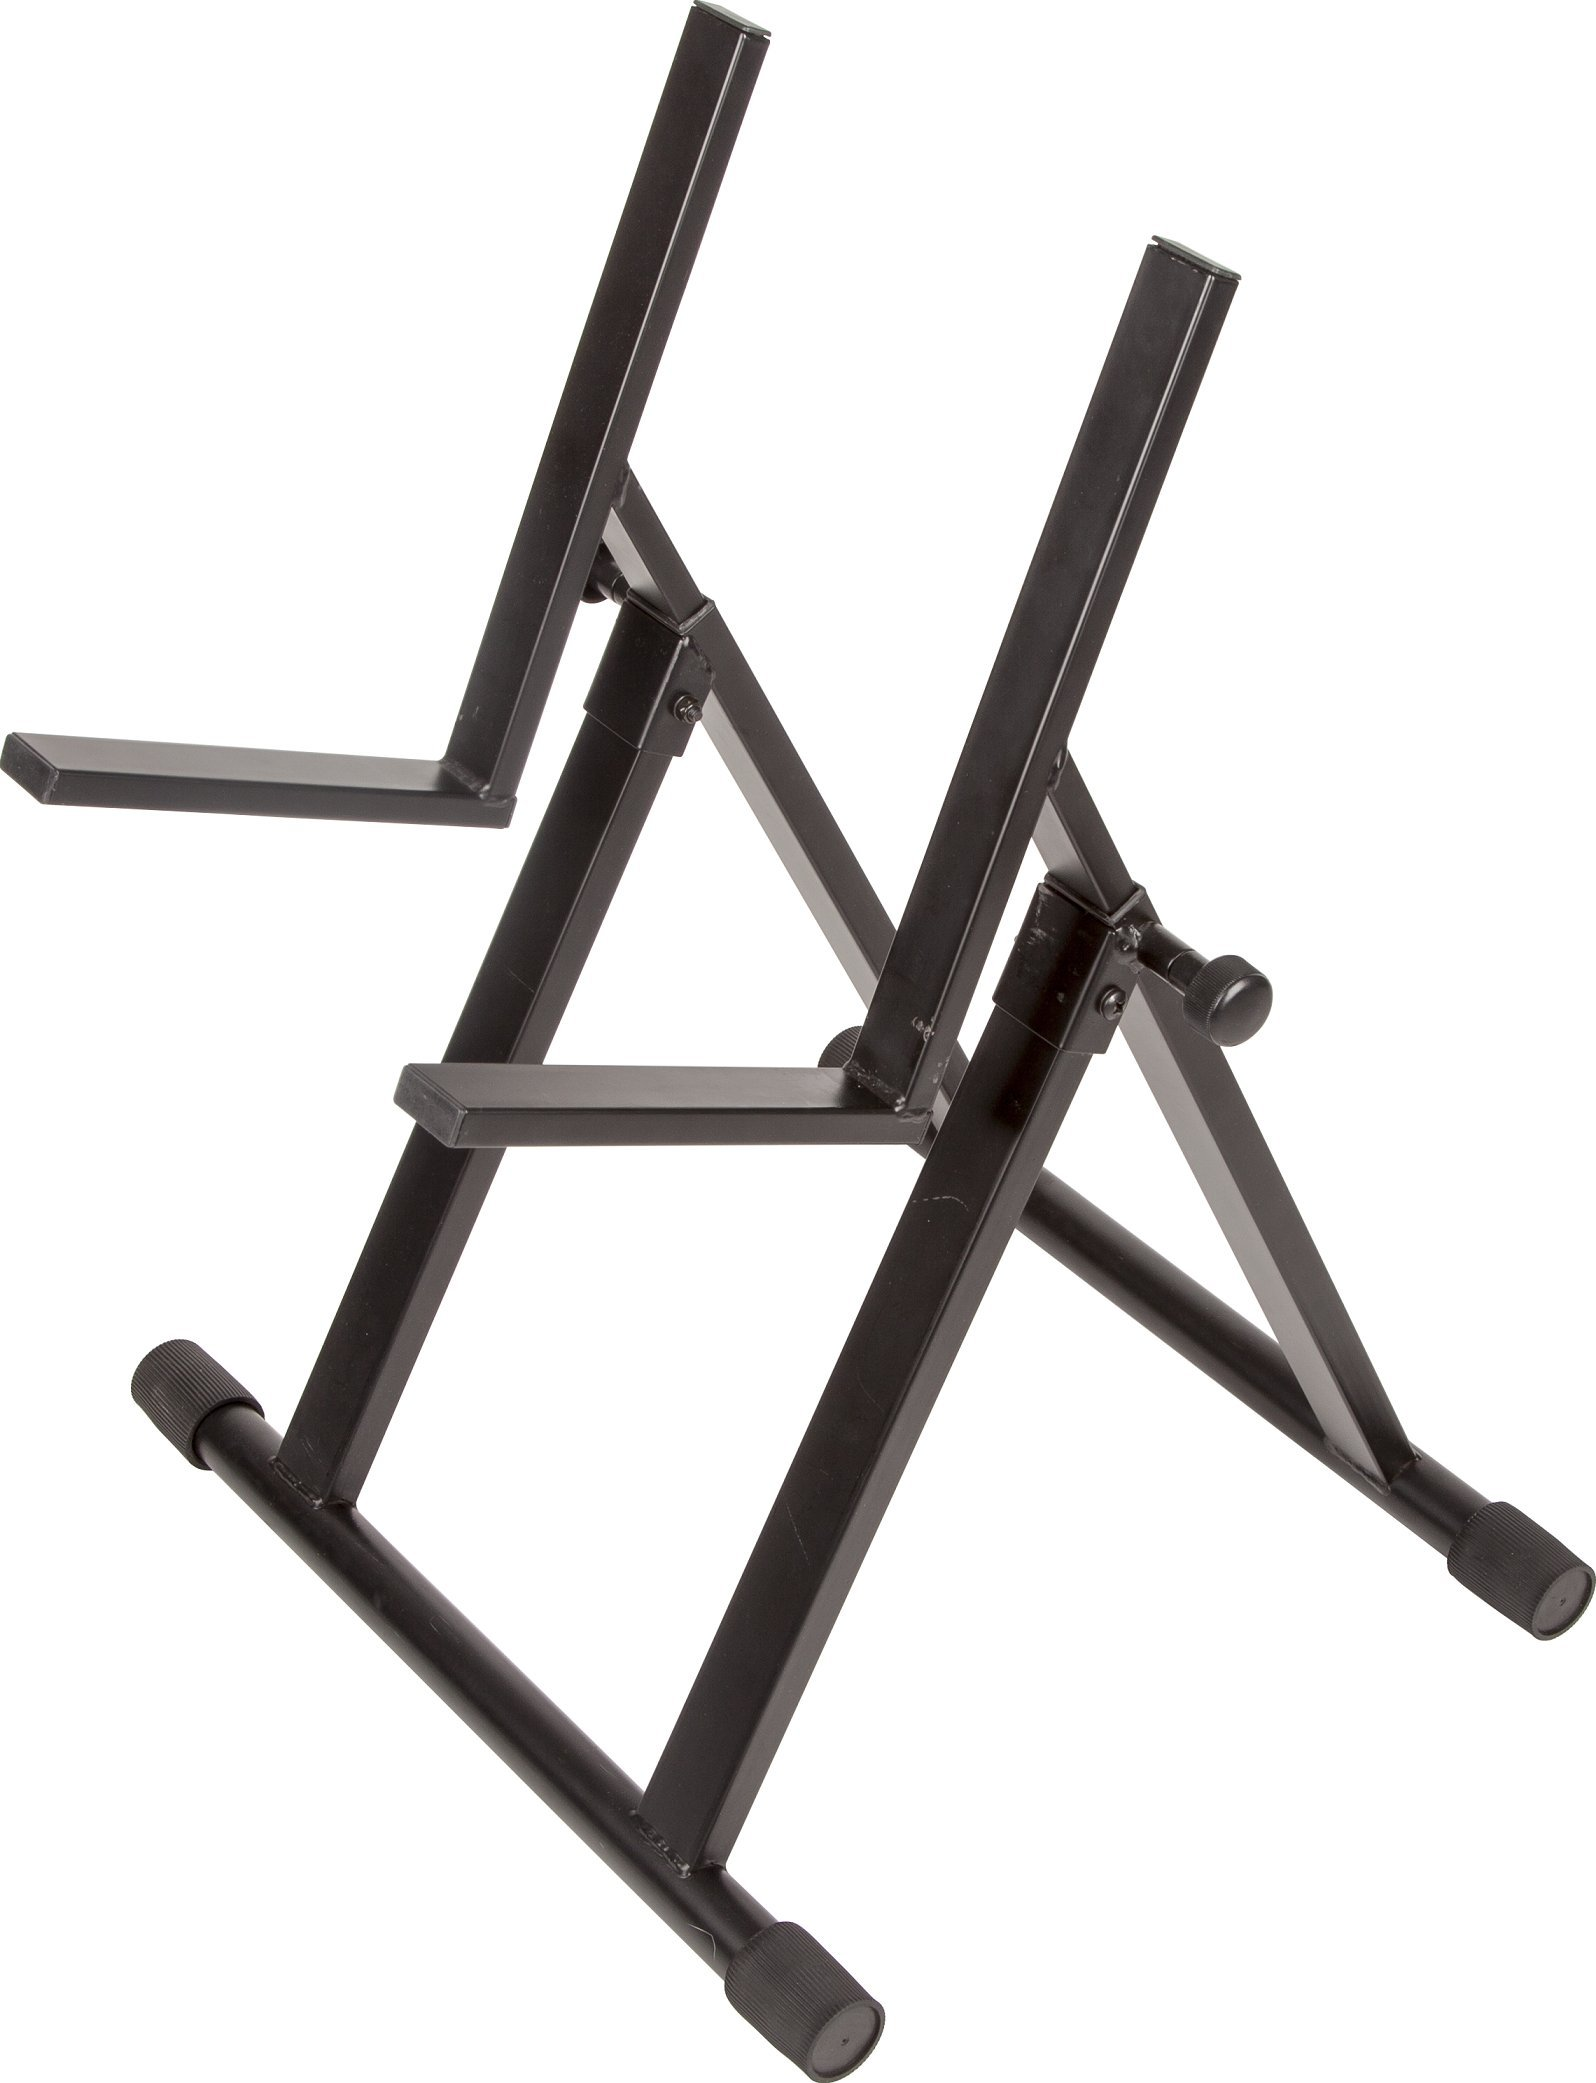 Fender Amplifier Stand, Large by Fender